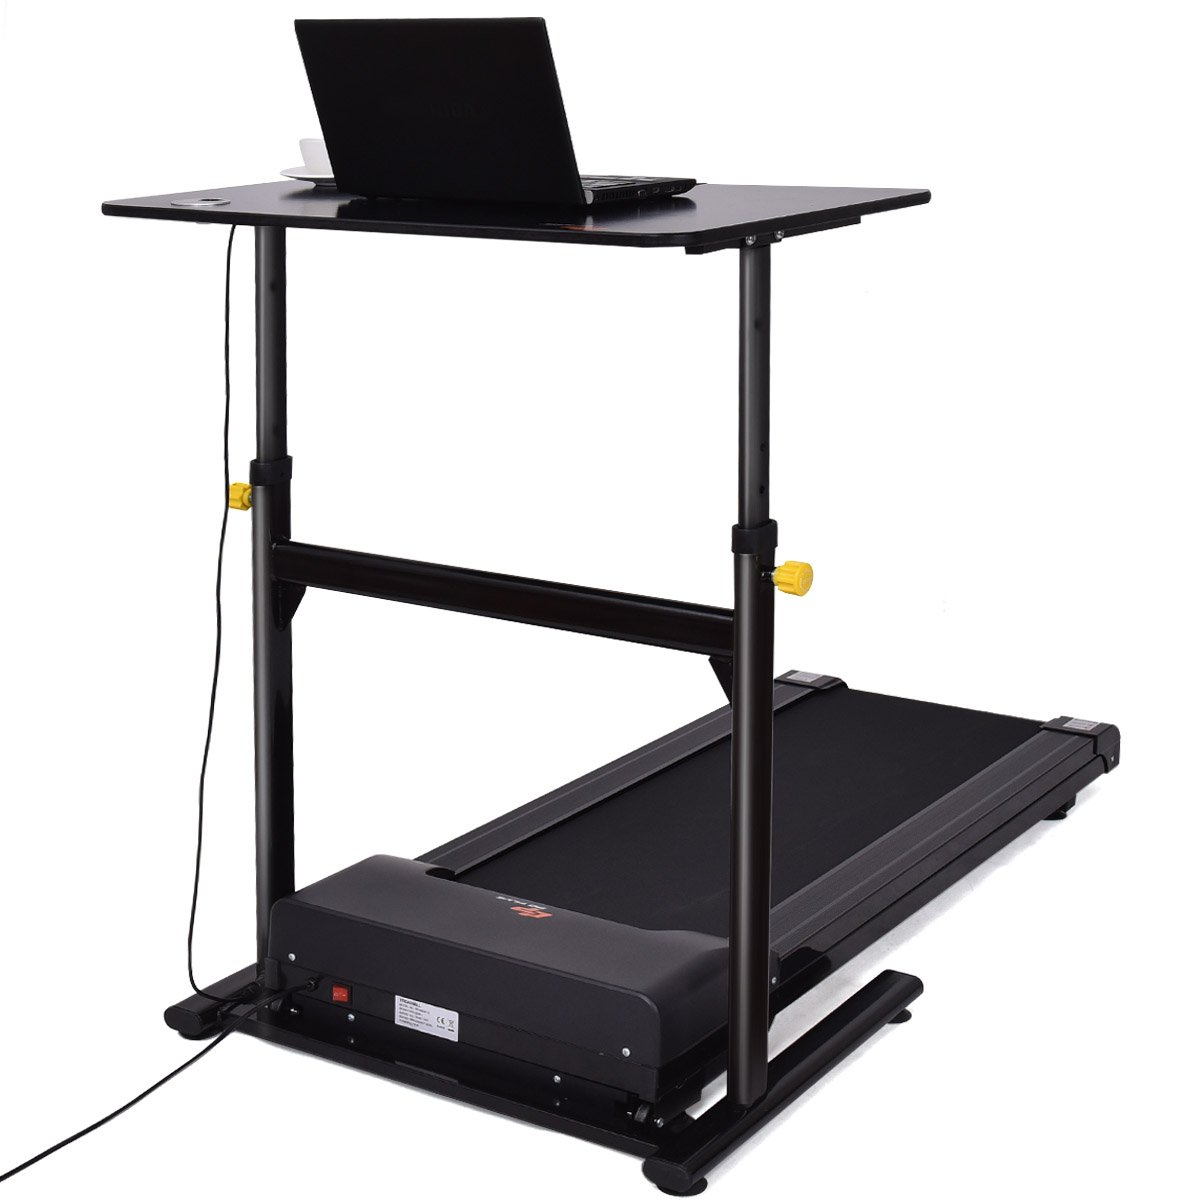 nordictrack youtube review watch desk treadmill reviews